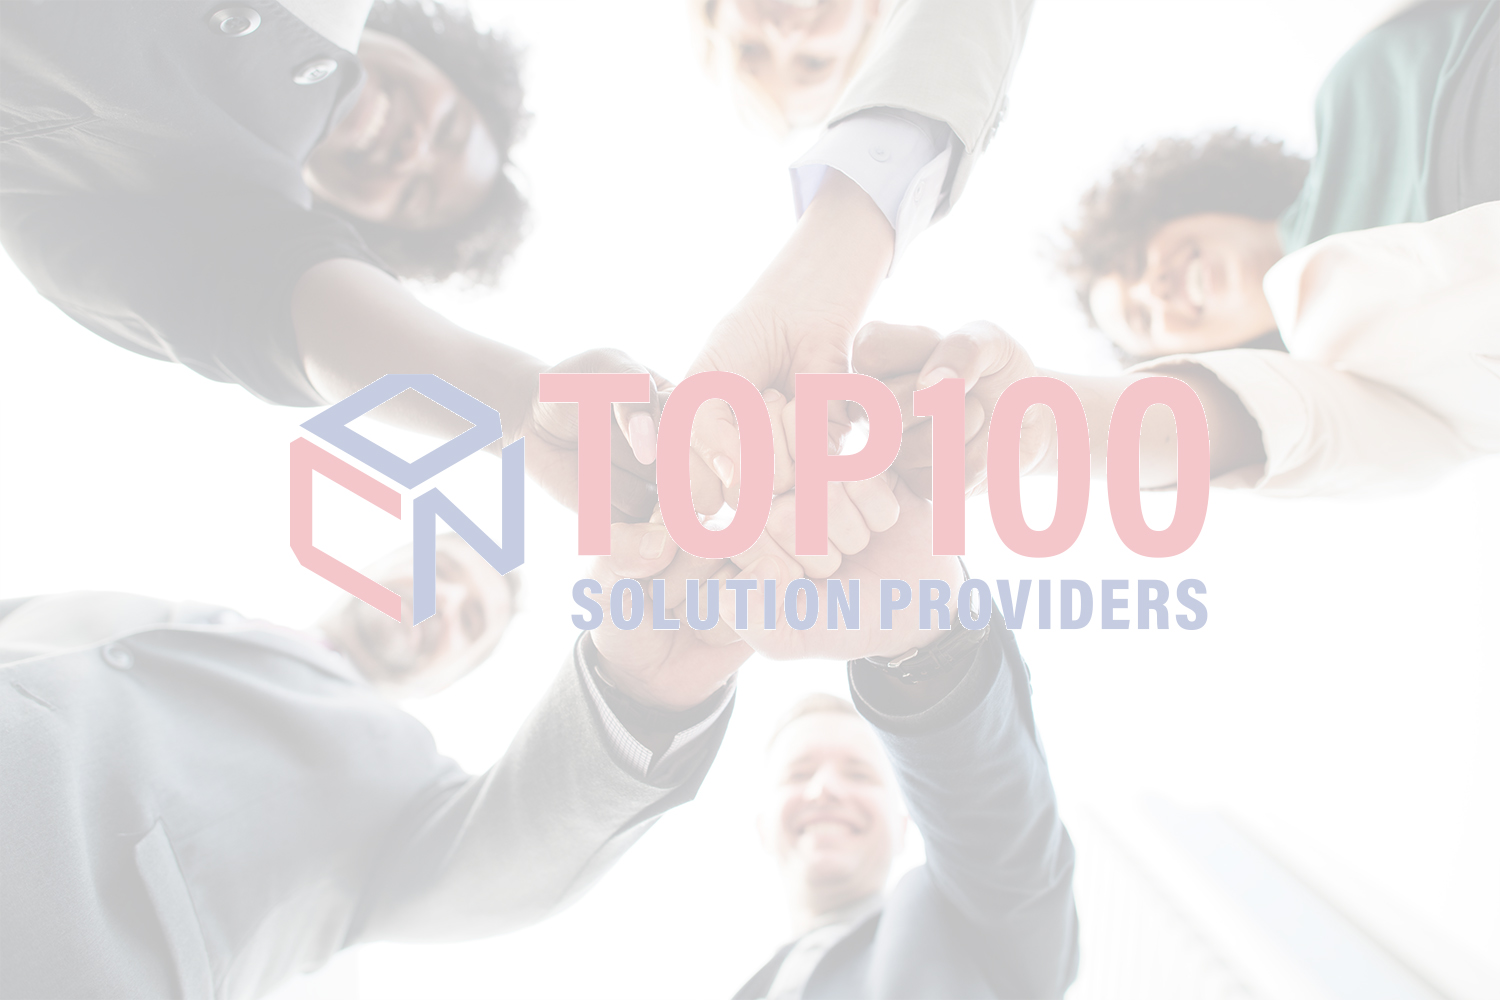 ProServeIT Corporation named to CDN's Top 100 Solution Providers for 2018